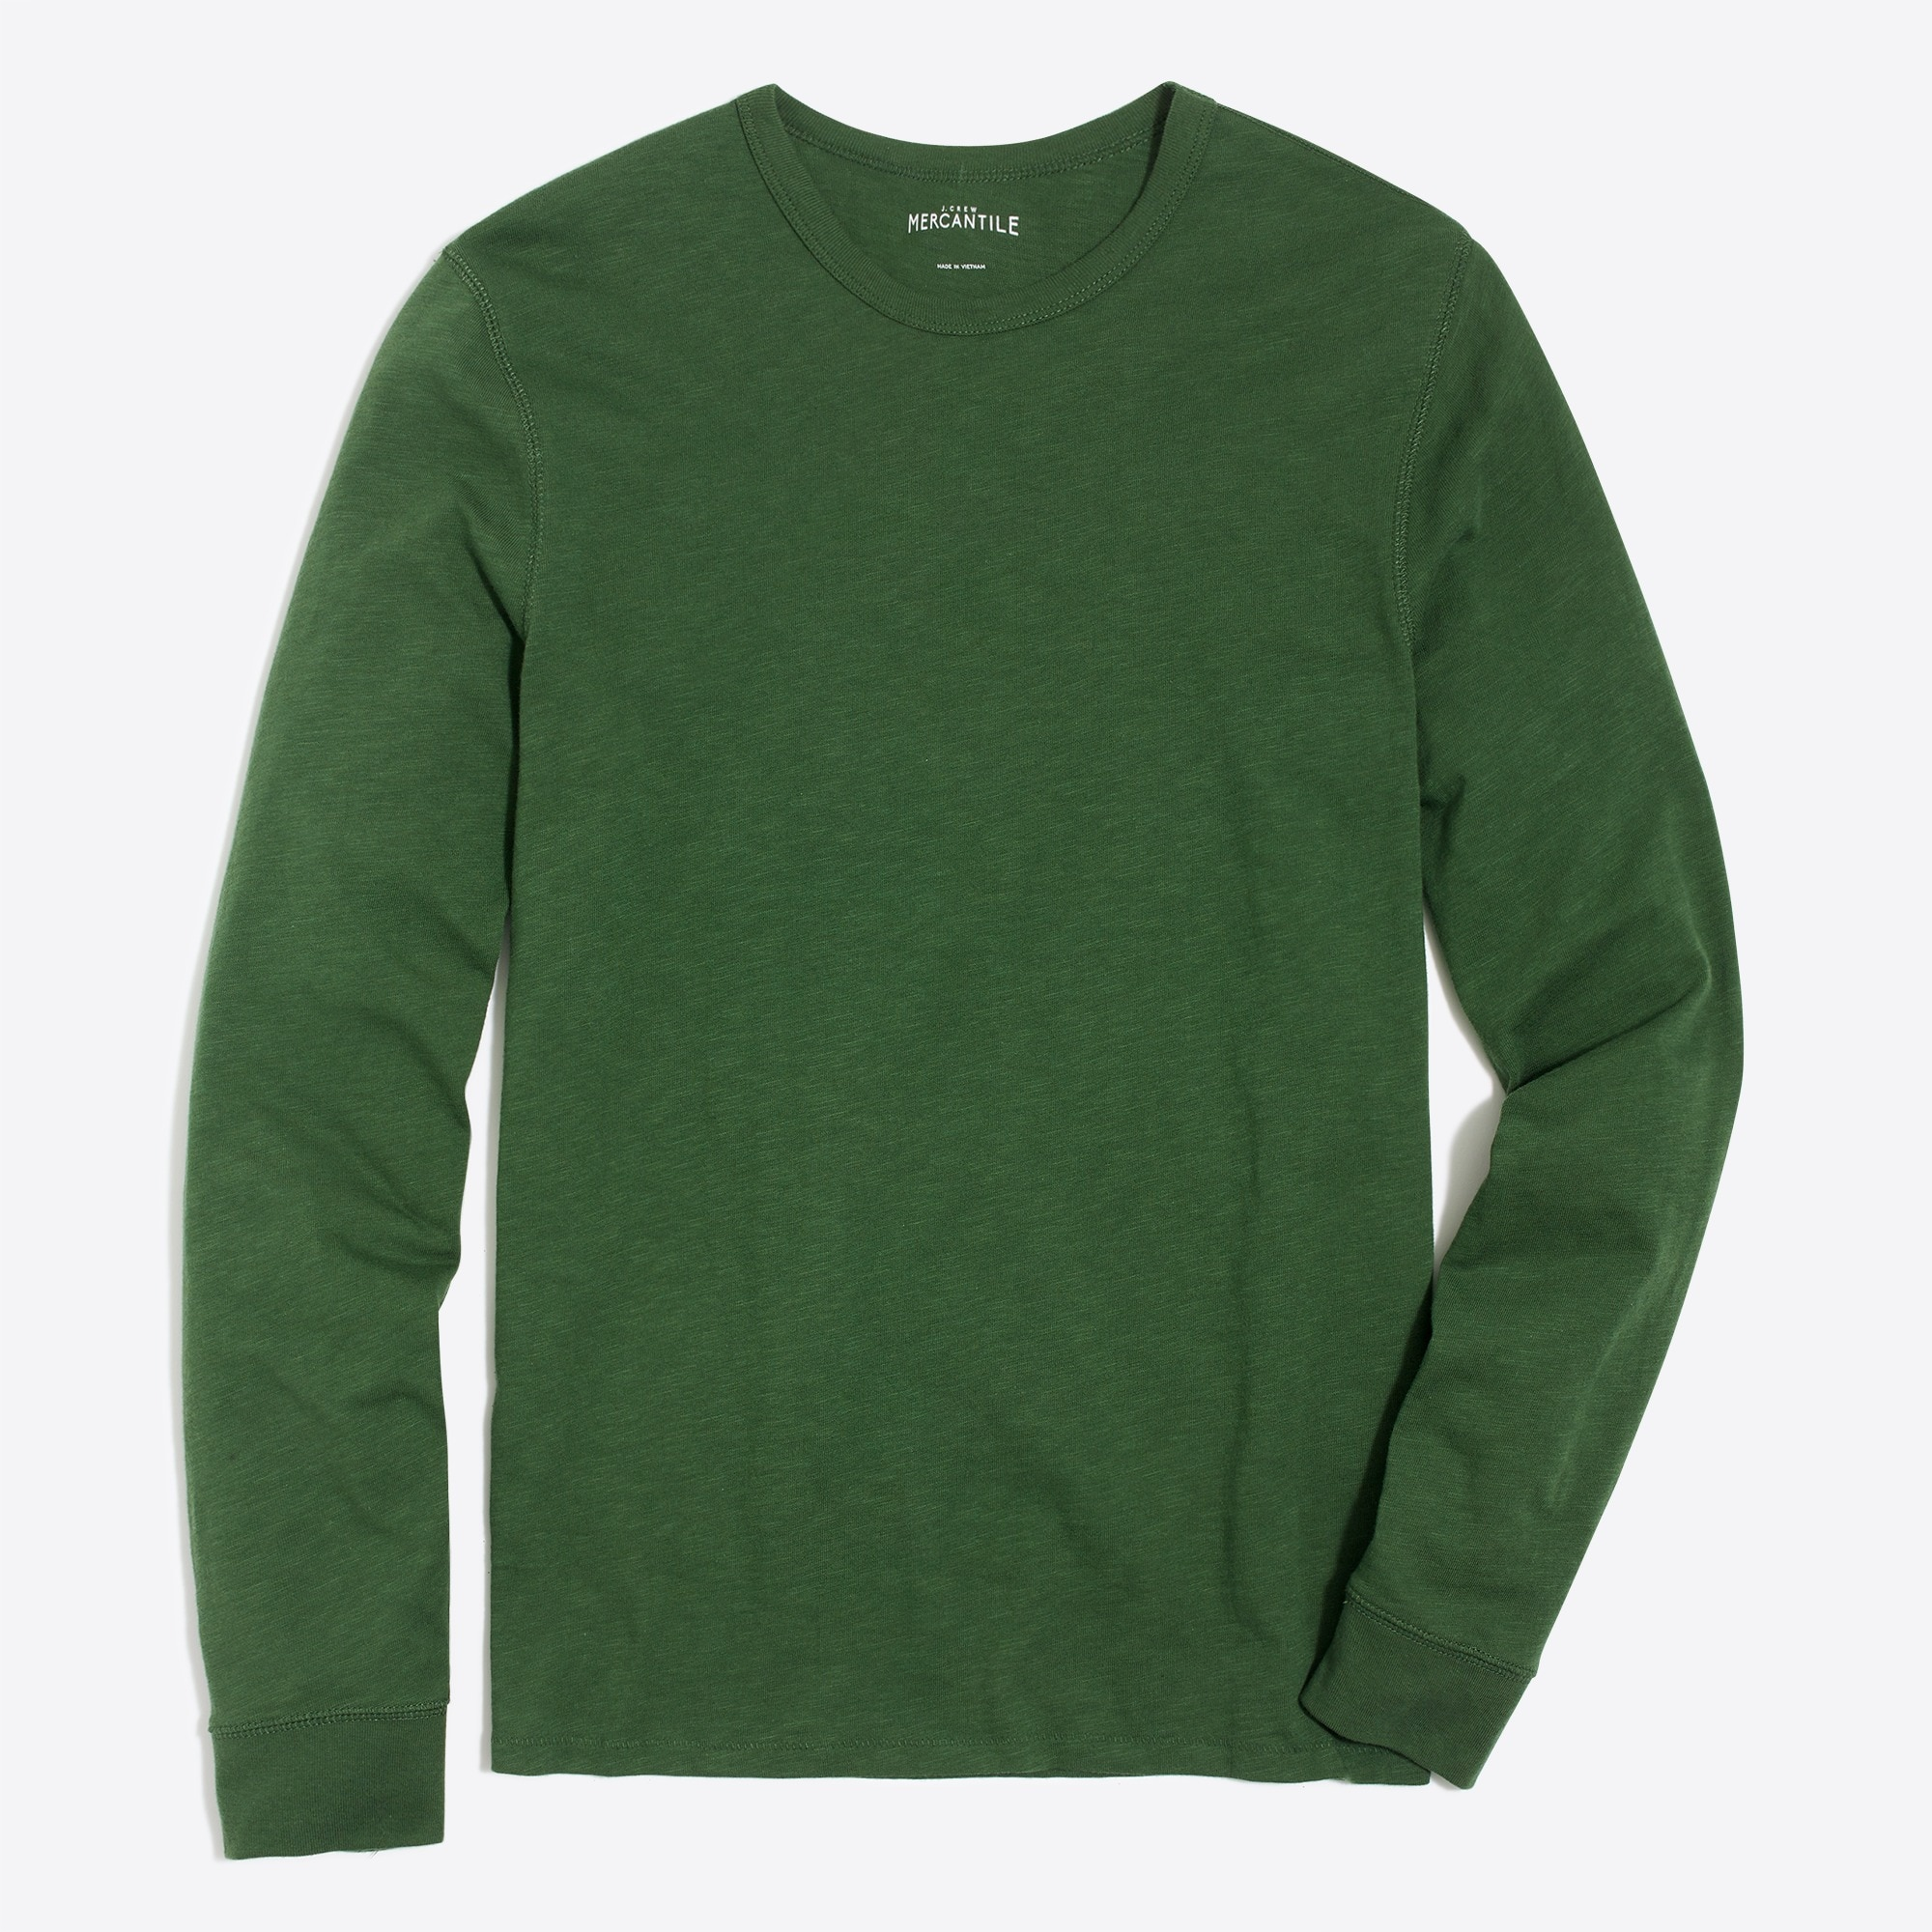 long-sleeve slub cotton t-shirt : factorymen extra-nice list deals